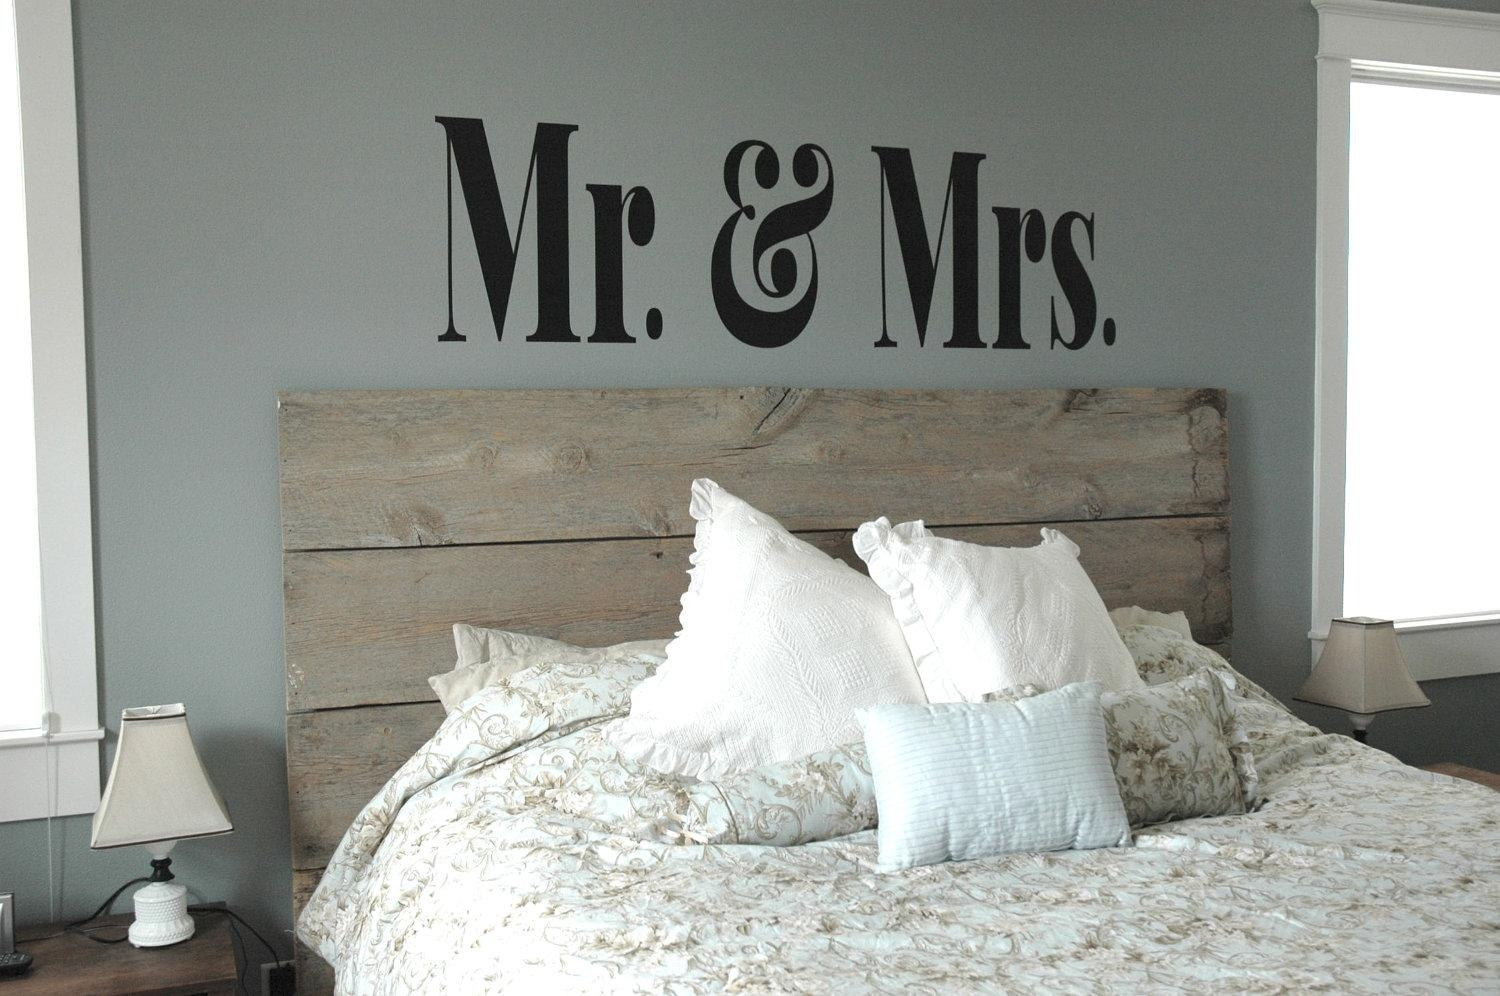 Xl Mr & Mrs Vinyl Decal Master Bedroom Decor Modern Throughout Mr And Mrs Wall Art (View 9 of 20)